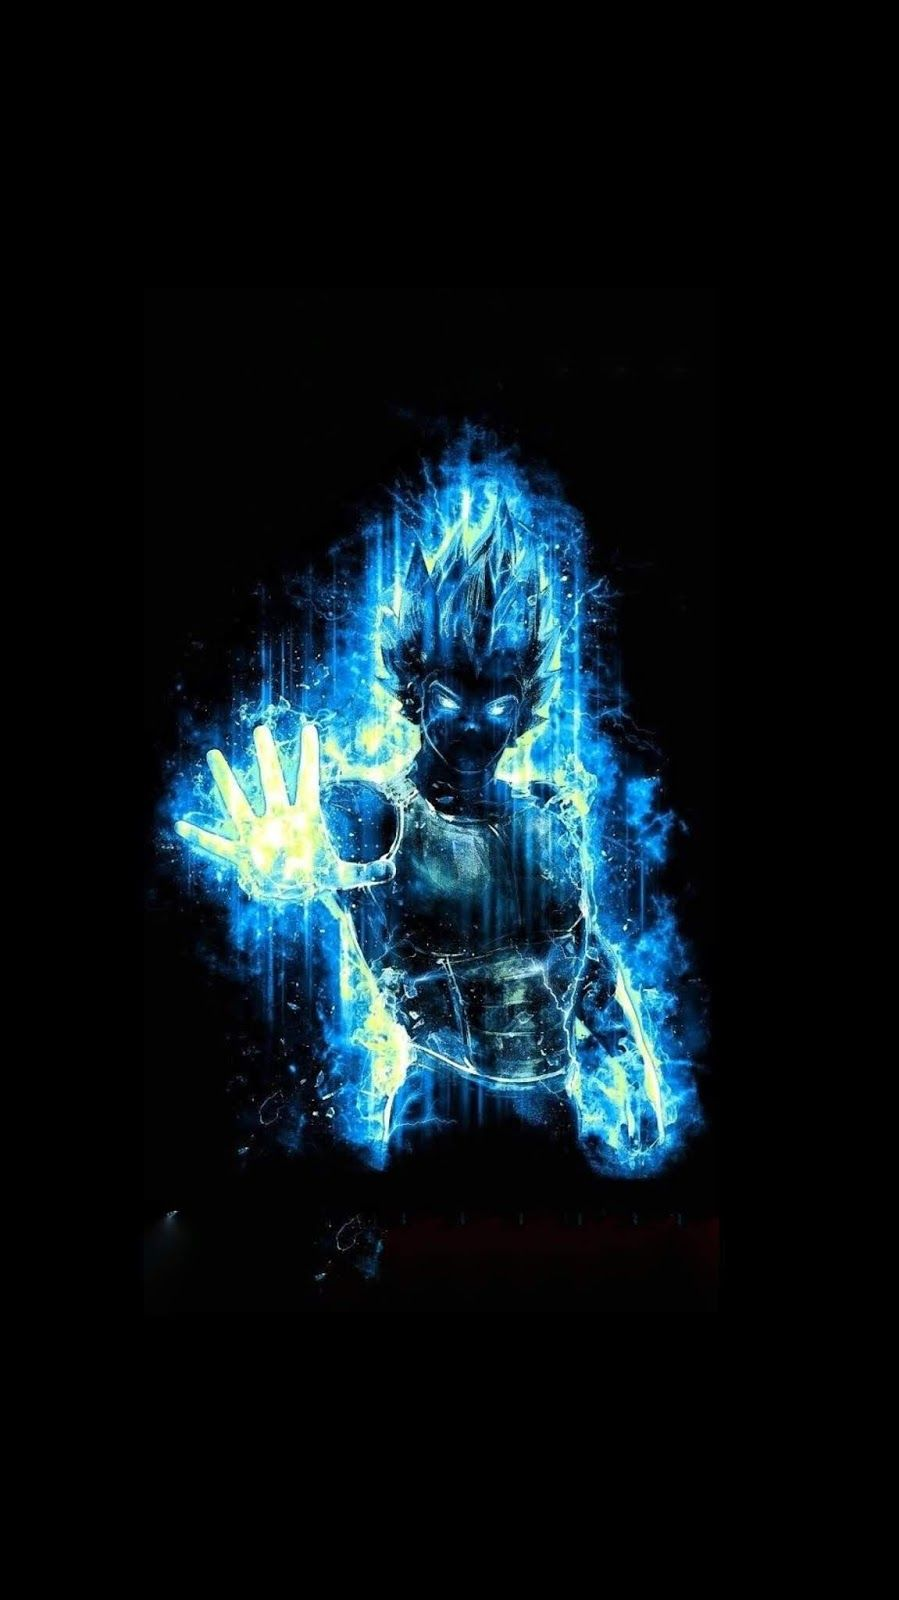 Best Hd Wallpaper For Android And Ios 2020 Dragon Ball Super Wallpapers Dragon Ball Artwork Dragon Ball Wallpapers